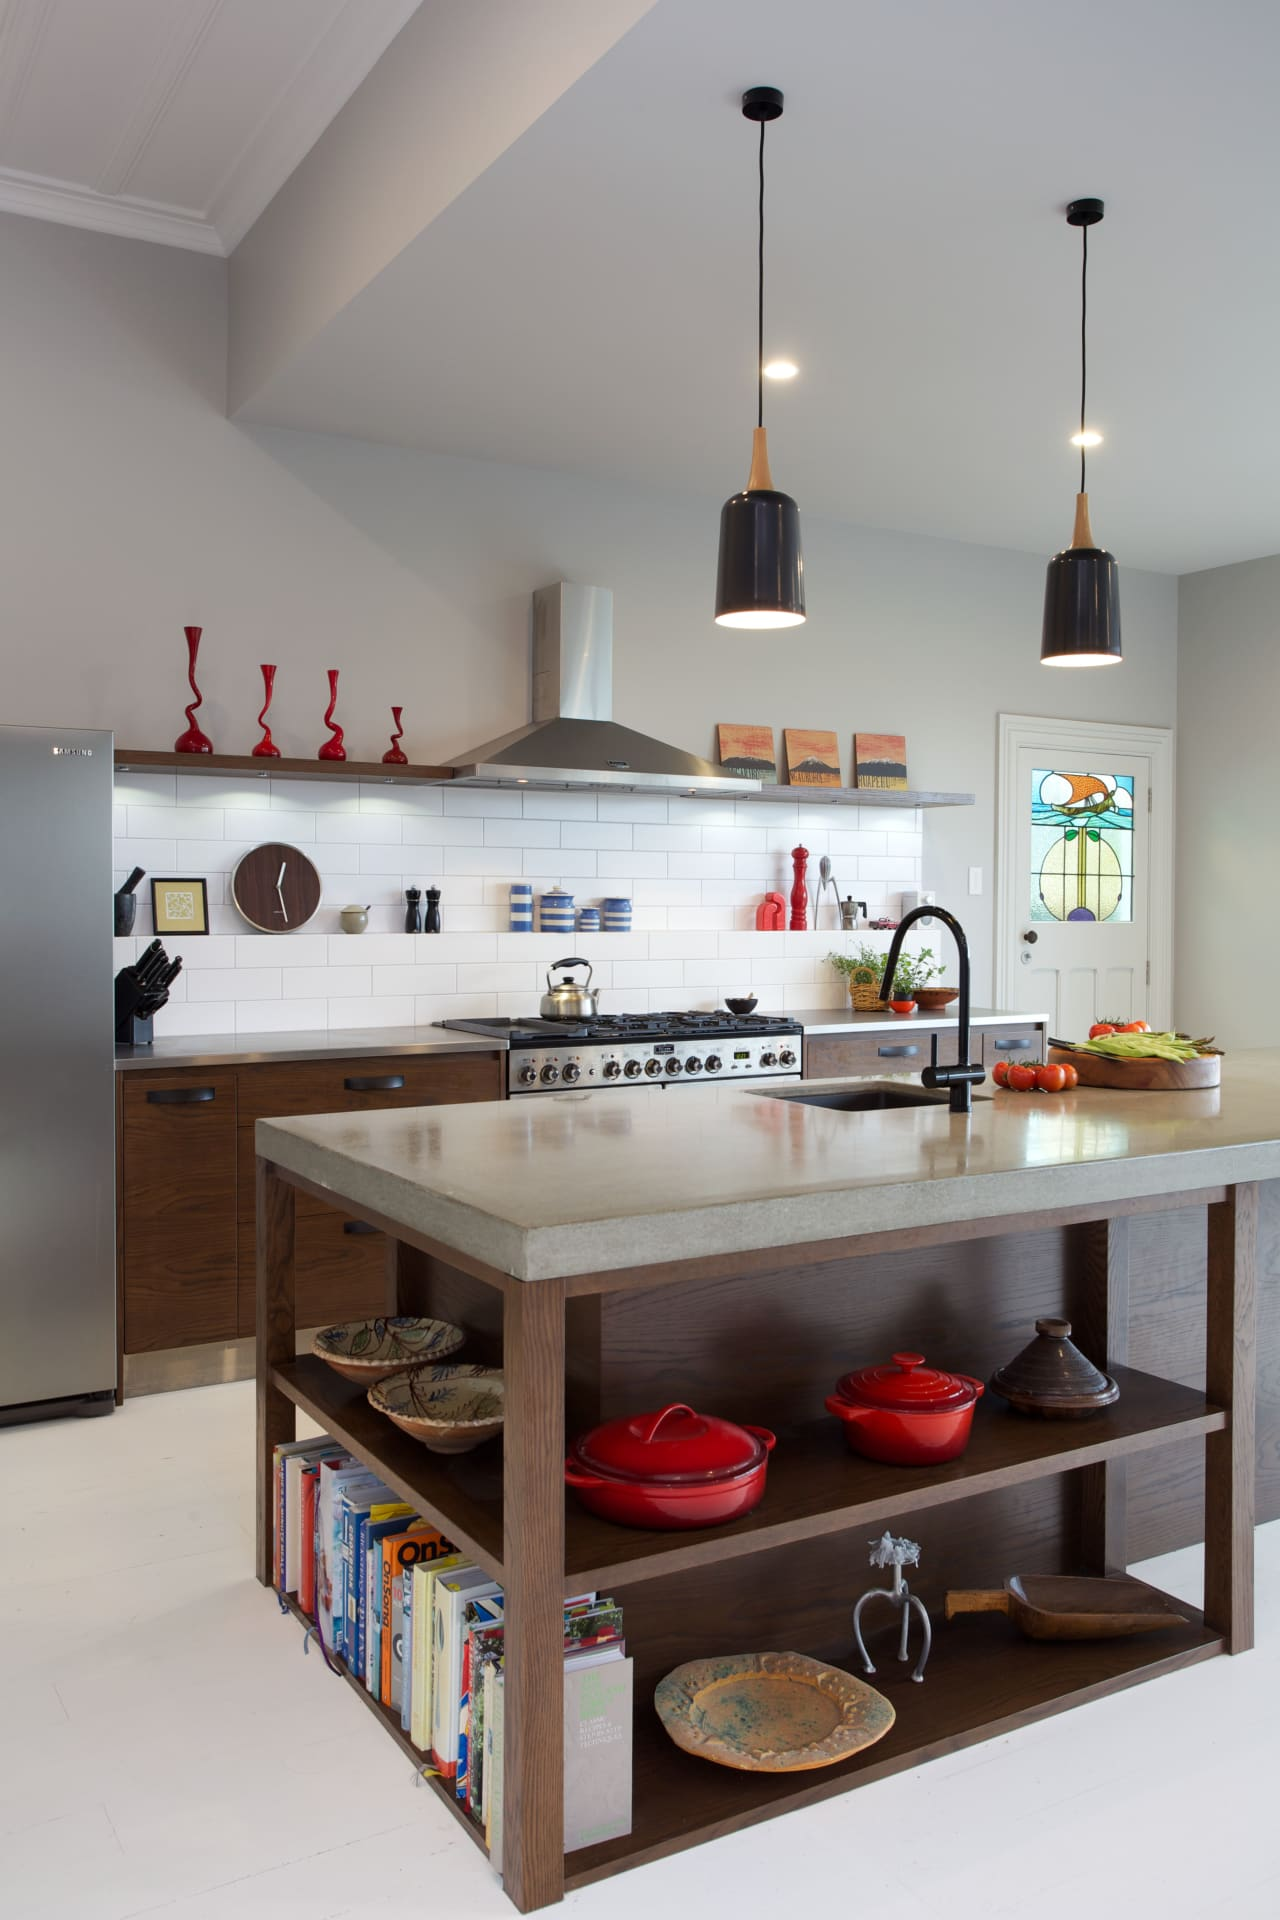 Quirky Eclectic Kitchen Featuring Design Icons Trends